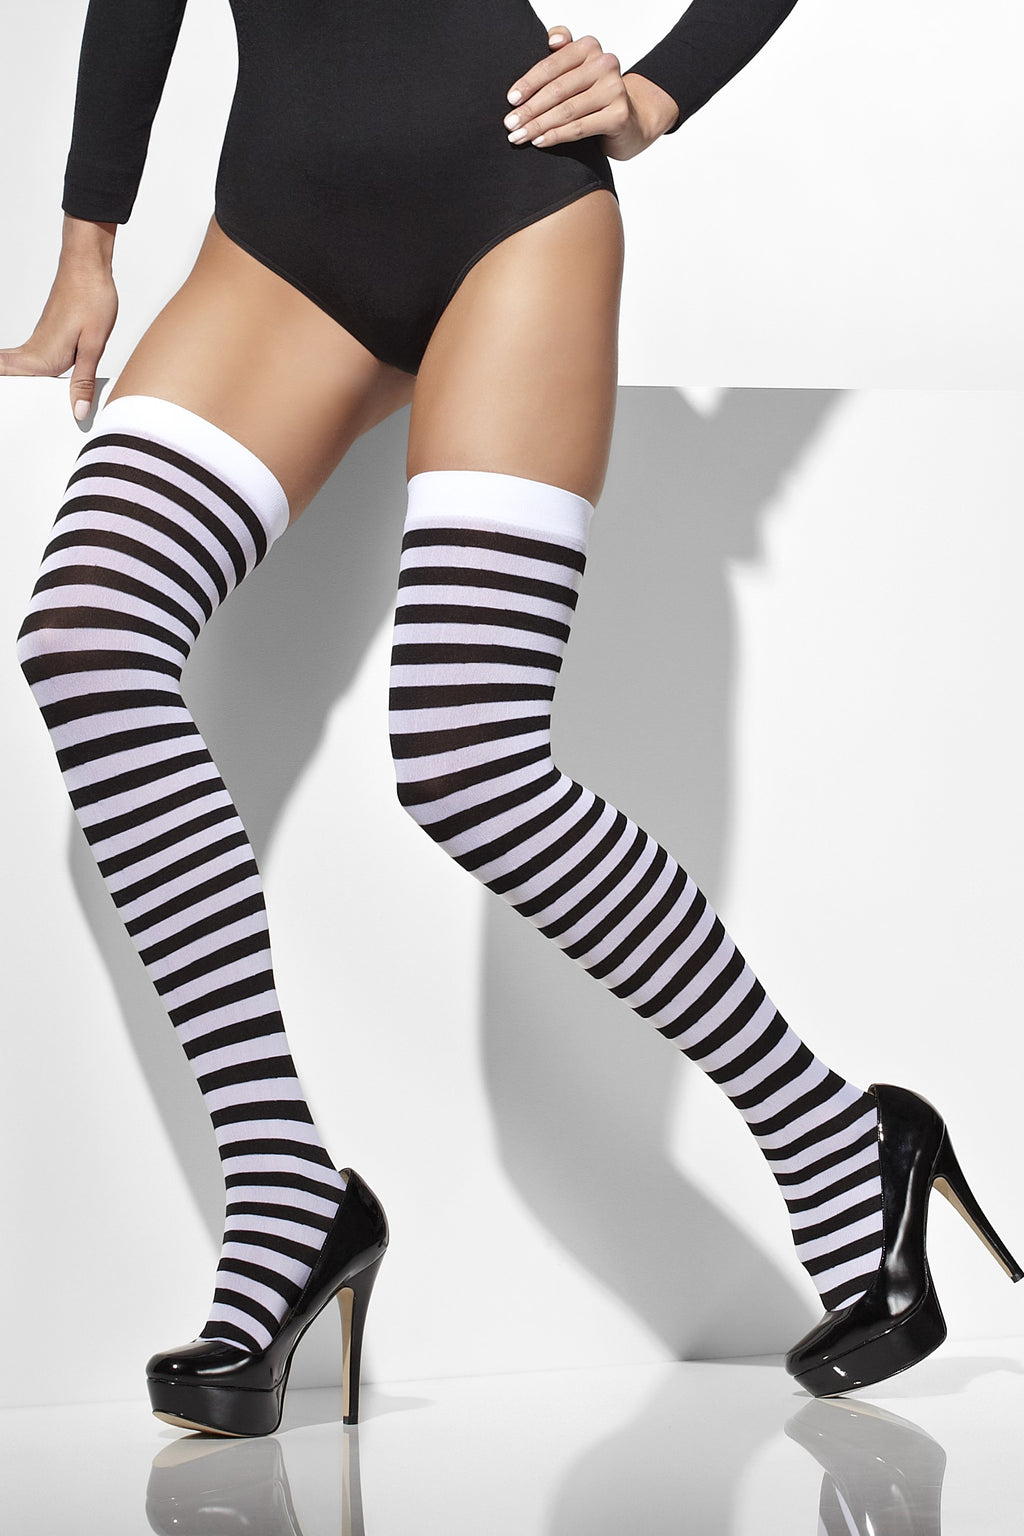 Black & White Opaque Hold Ups